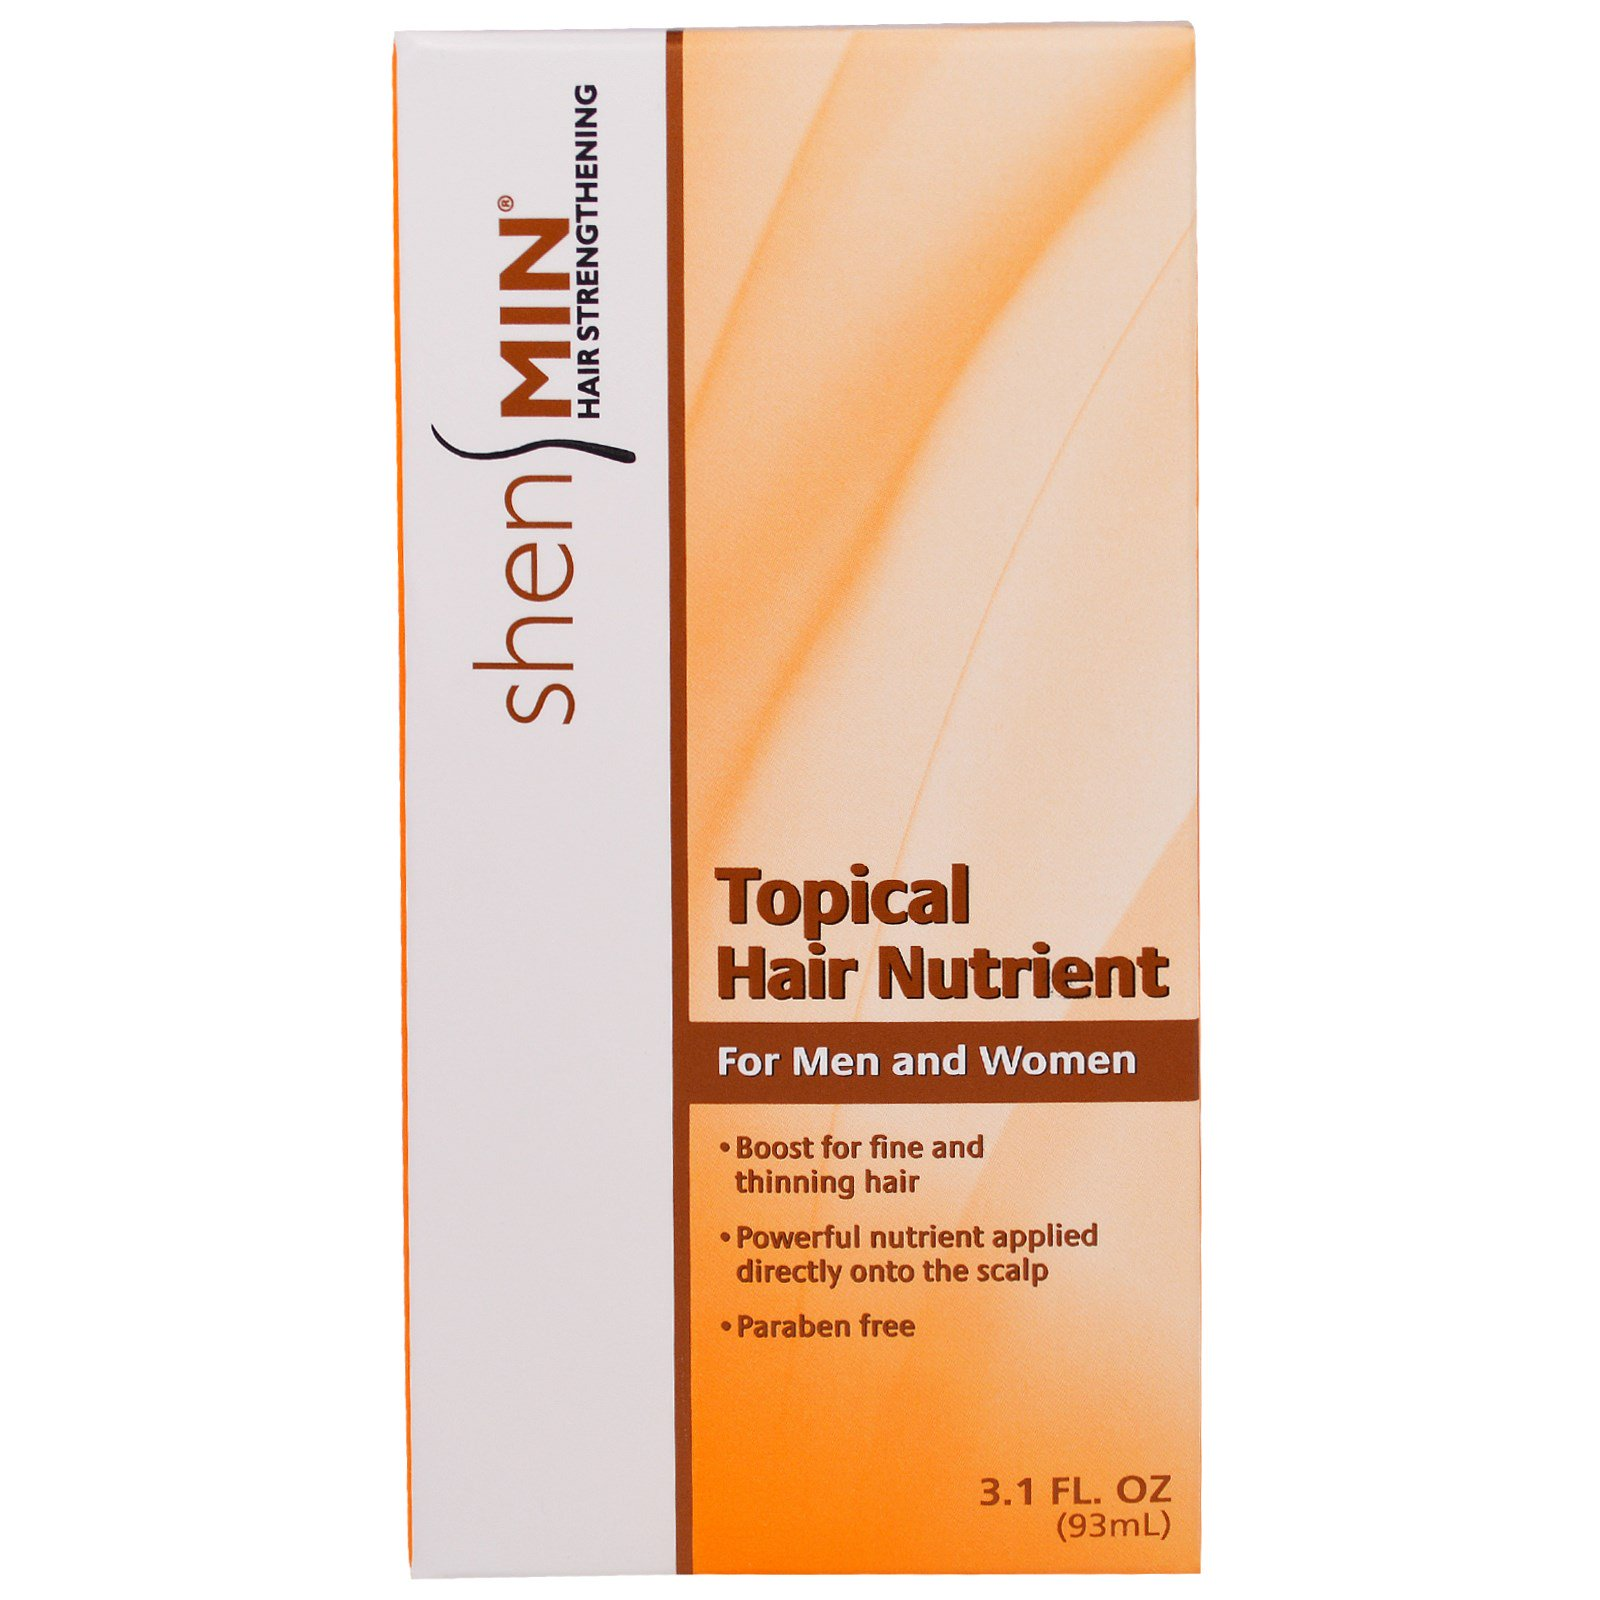 Natrol Shen Min Topical Hair Nutrient For Men And Women 31 Fl